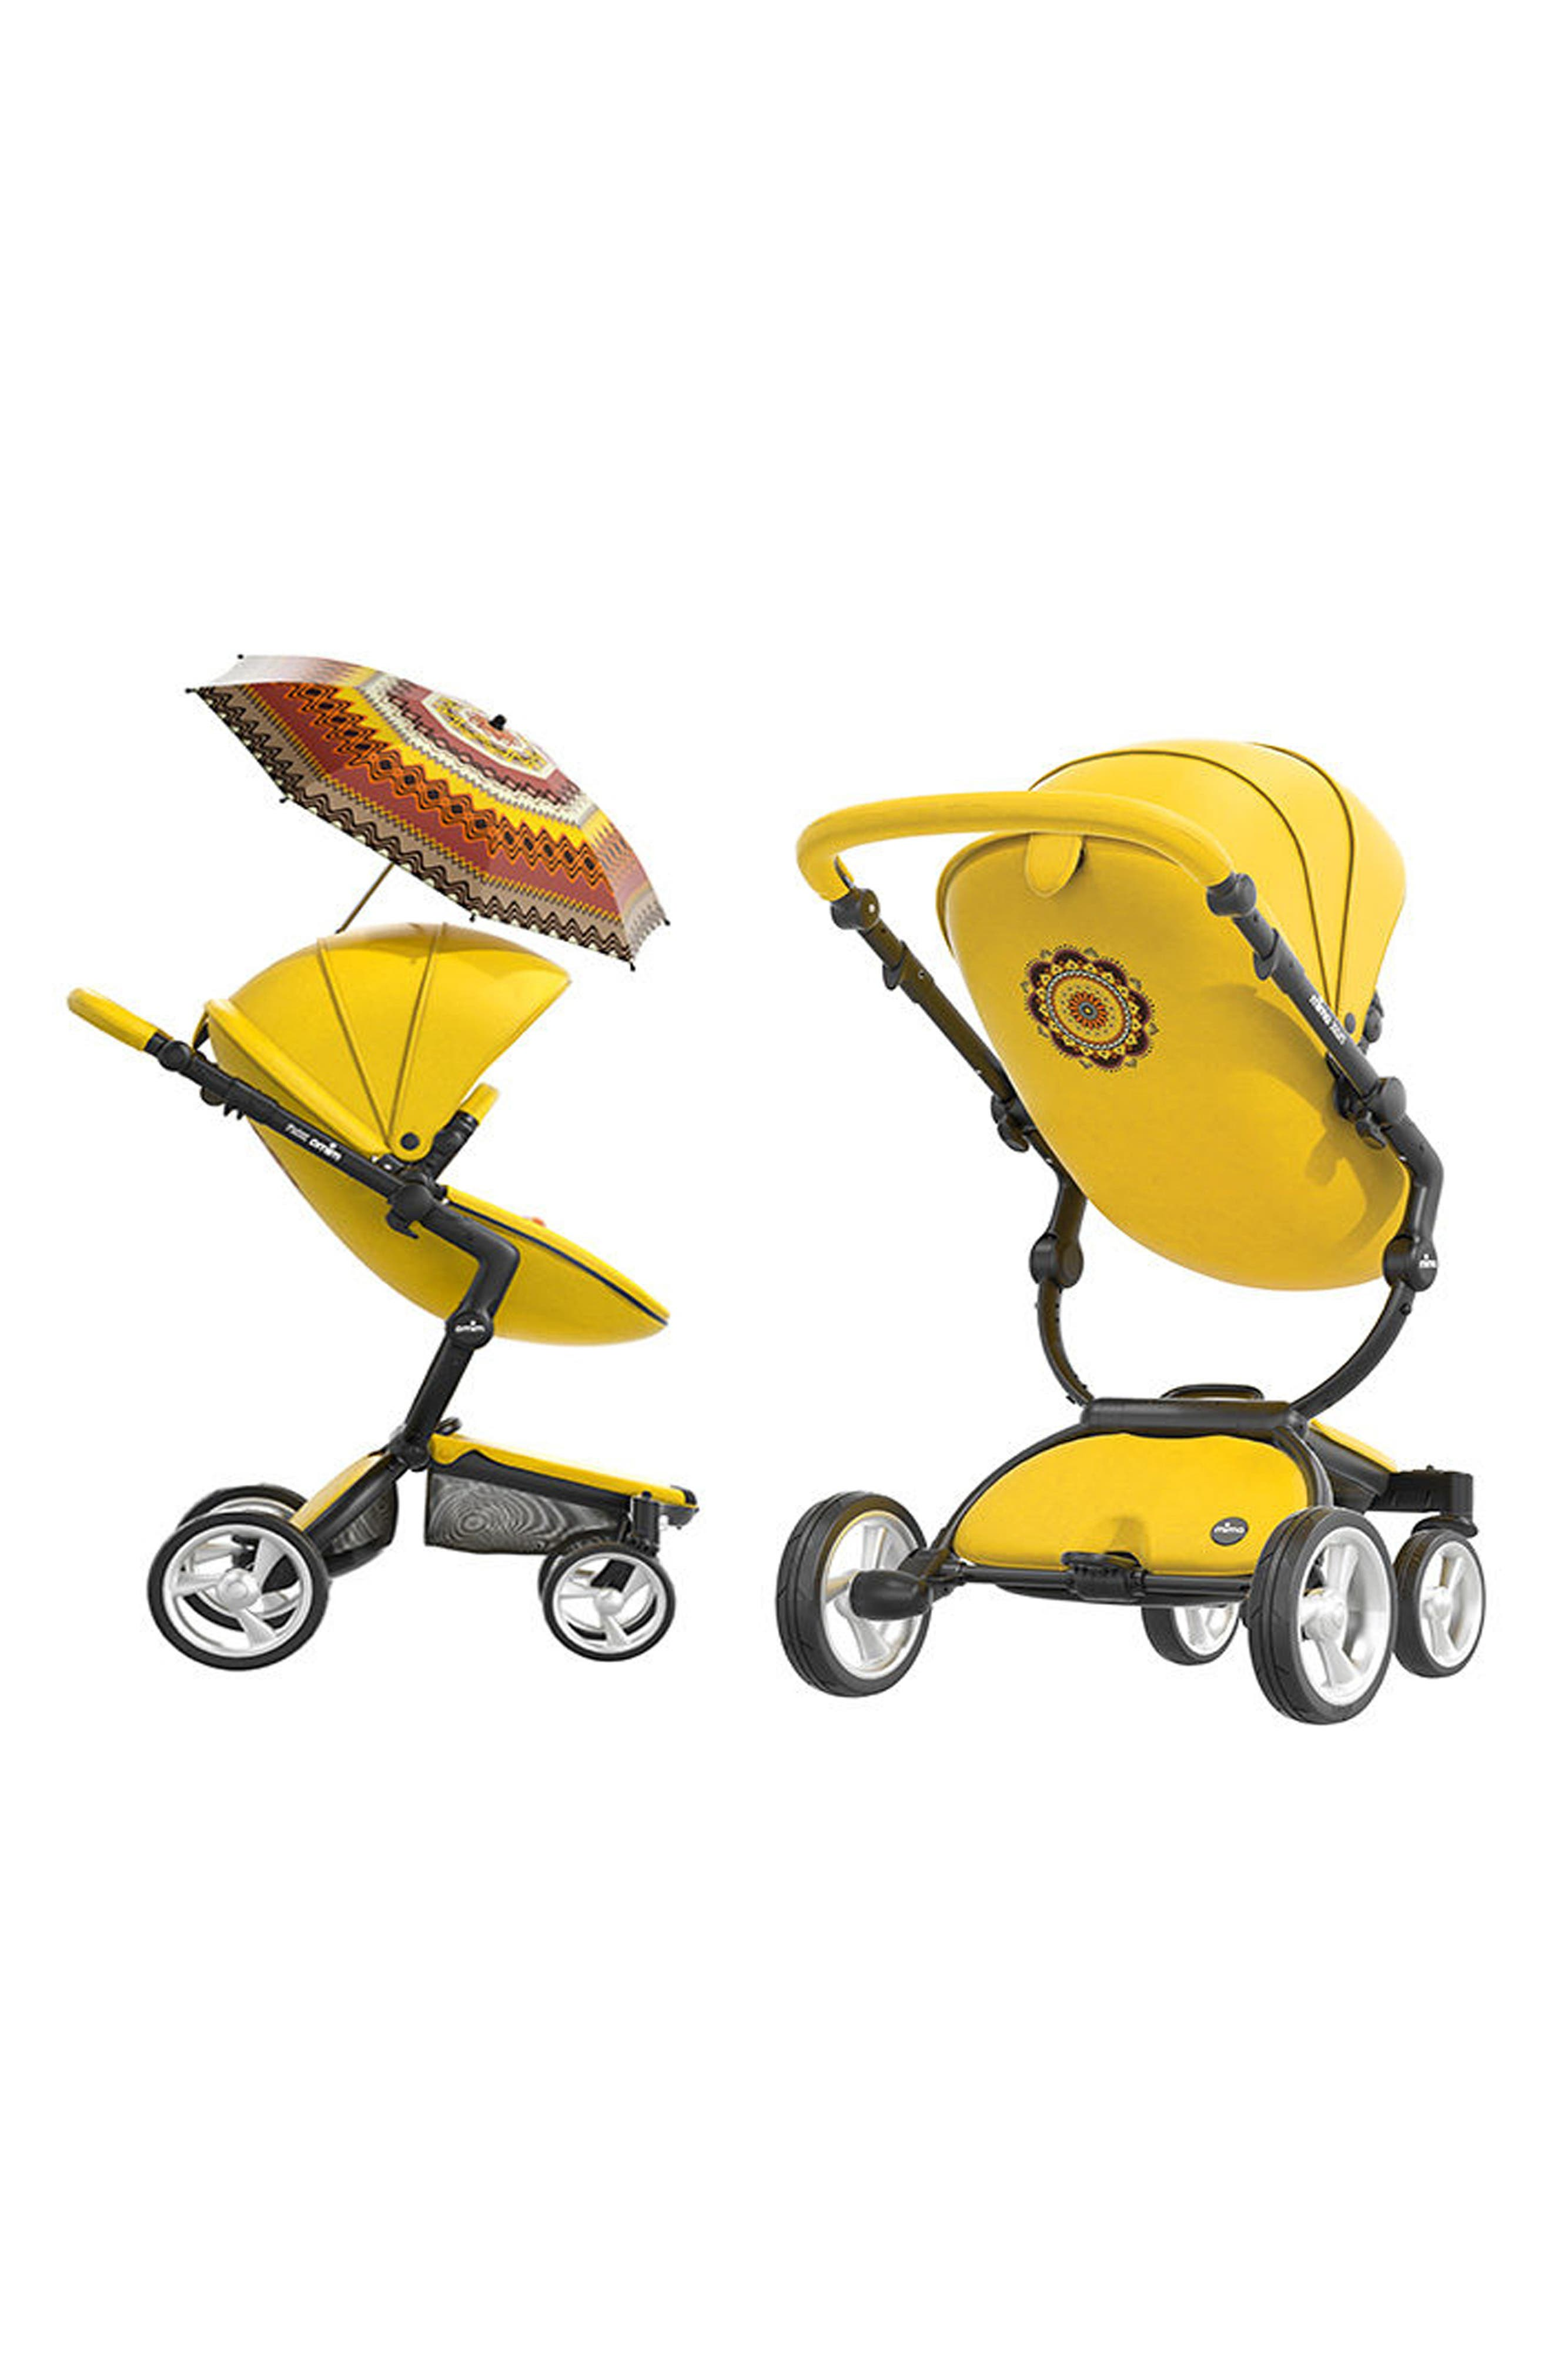 Xari Special Edition Chassis Stroller with Seat, Carrycot & Accessories,                             Alternate thumbnail 6, color,                             SPECIAL EDITION YELLOW